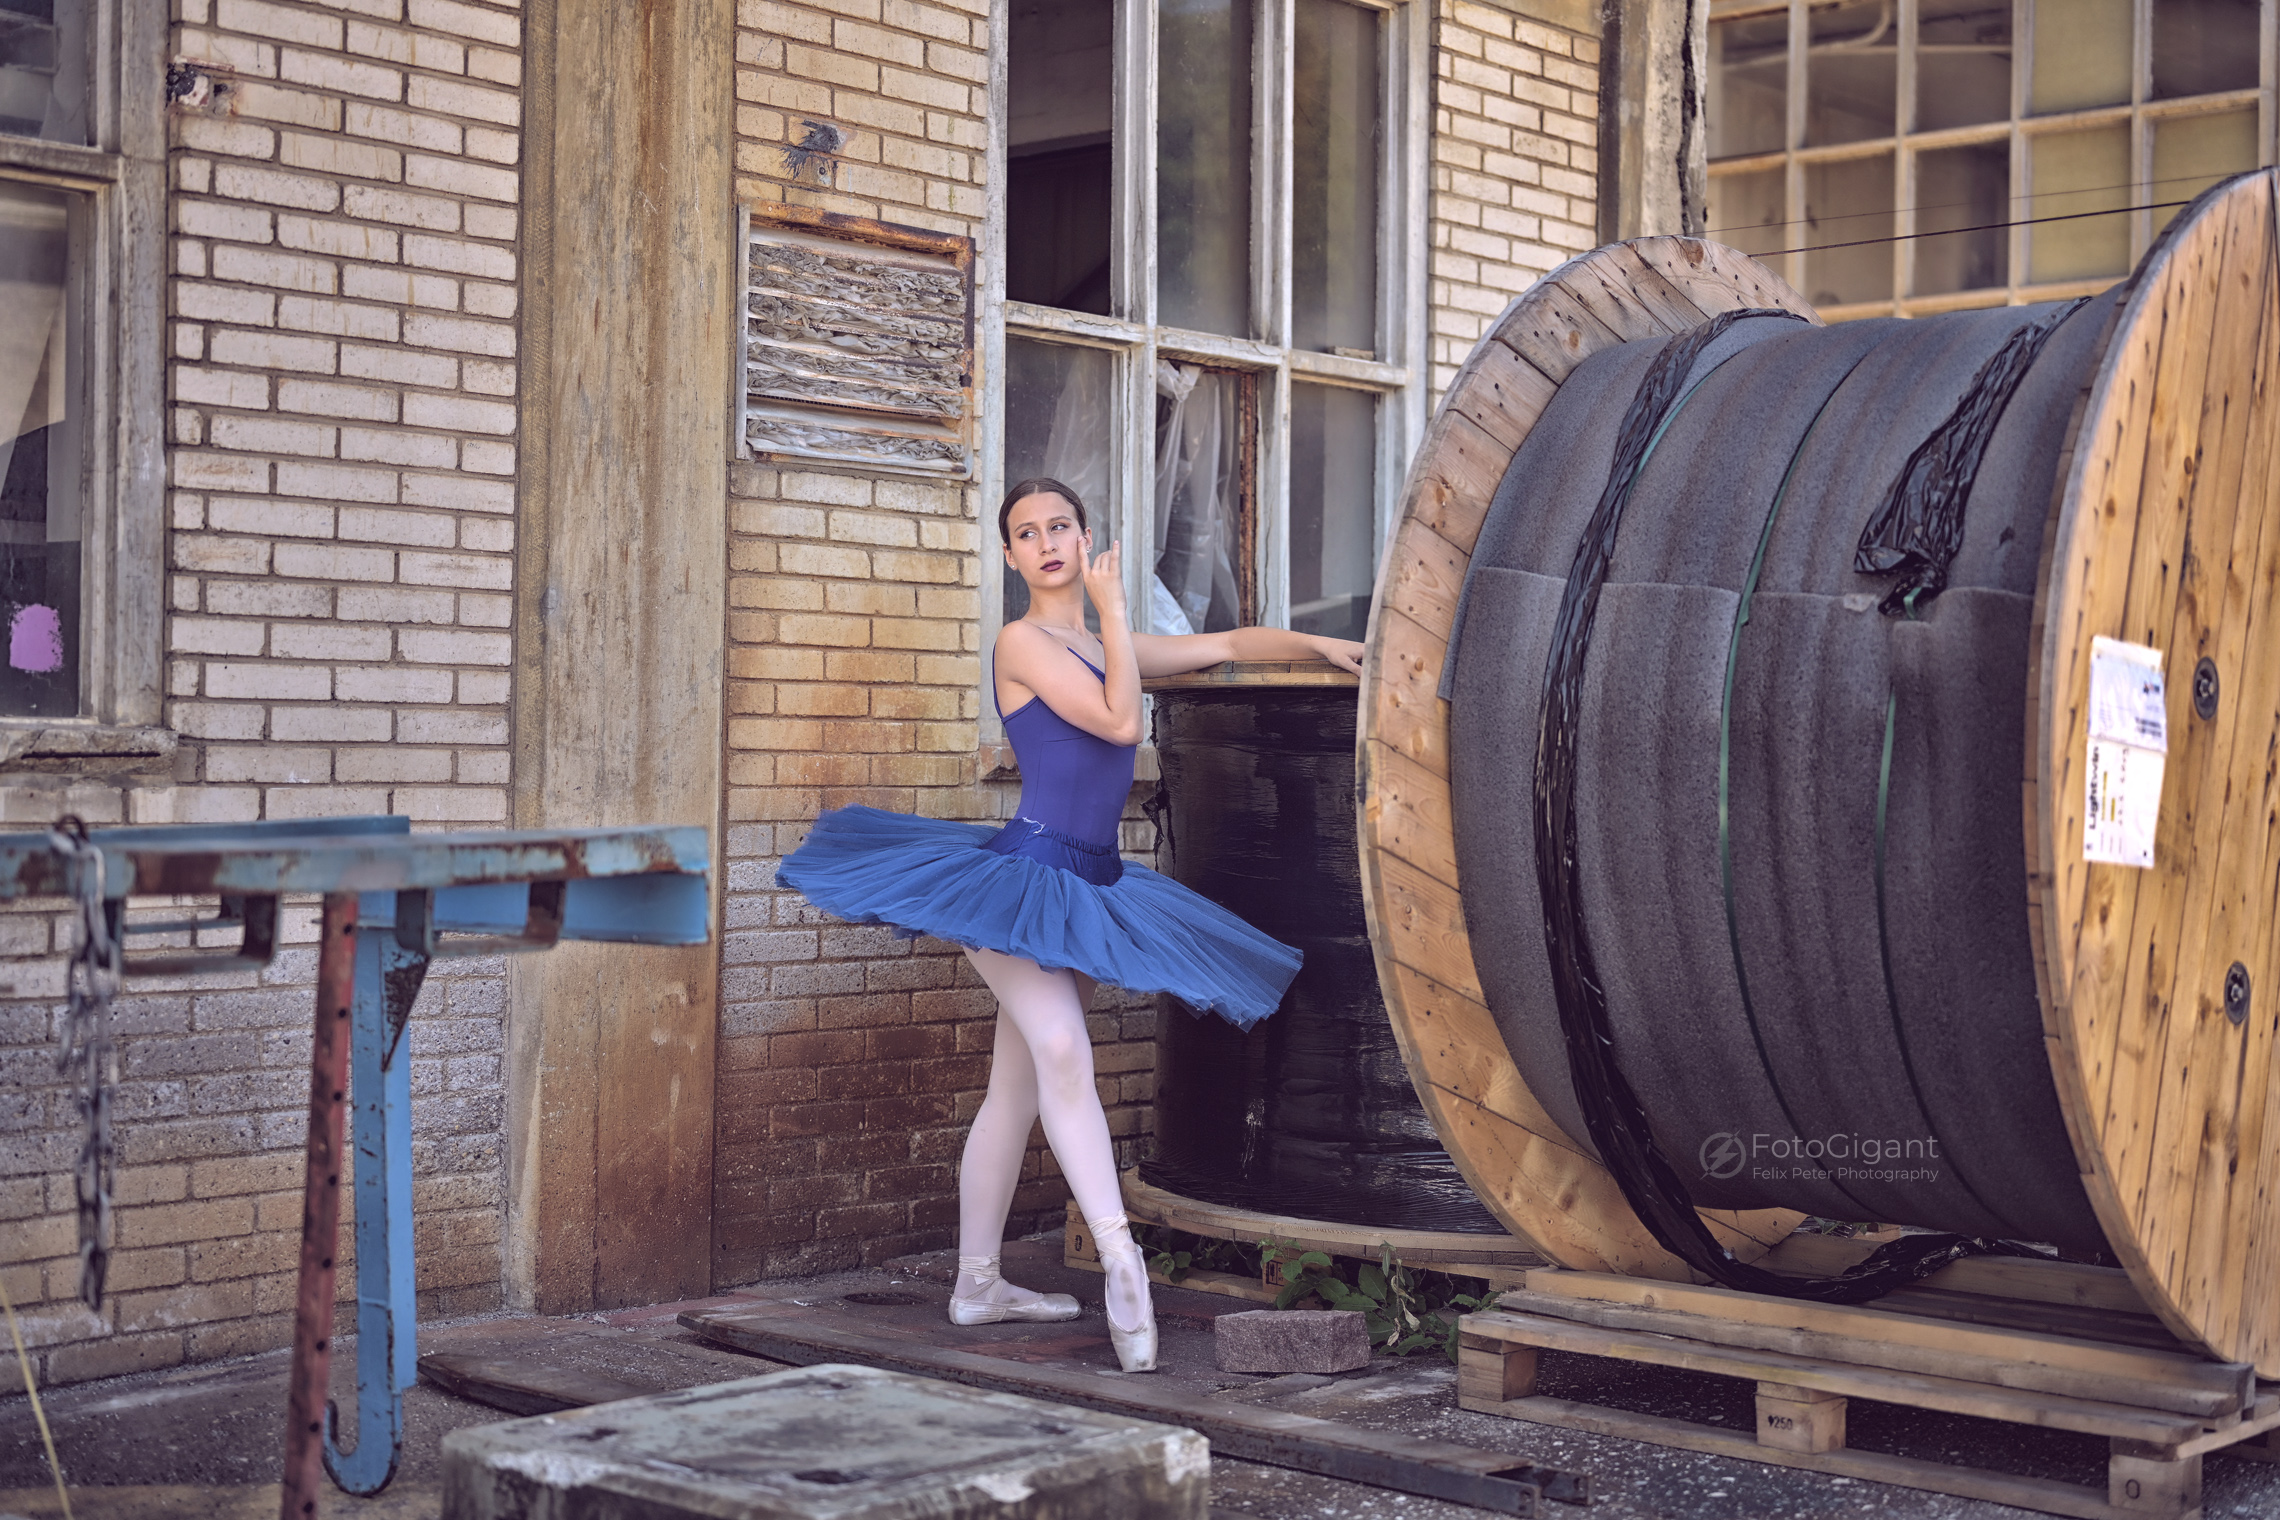 Balletdancer_in_Lostplace_25.jpg